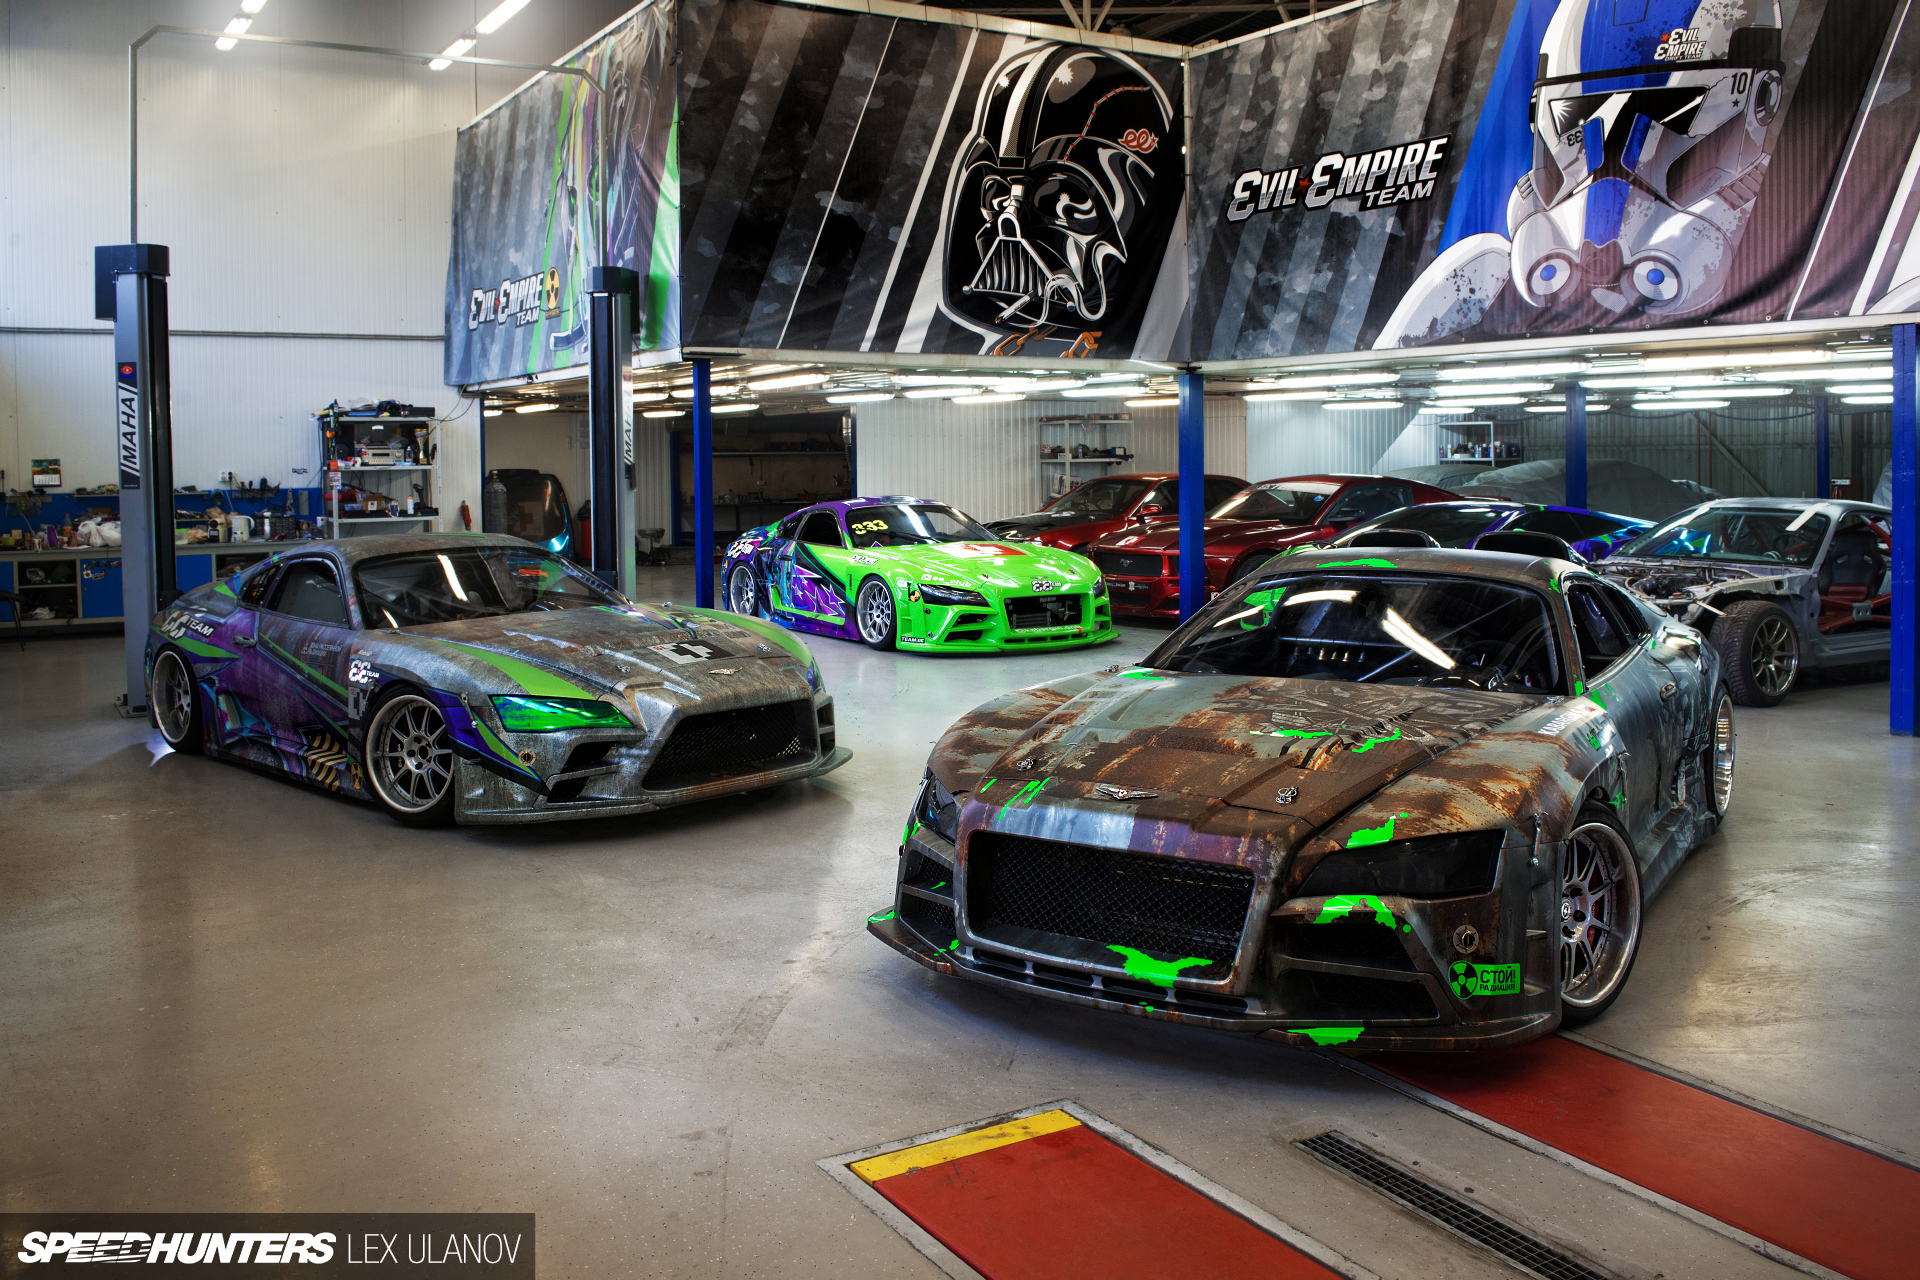 Toyota Supra 2016 >> A Peek Inside The Evil Empire - Speedhunters